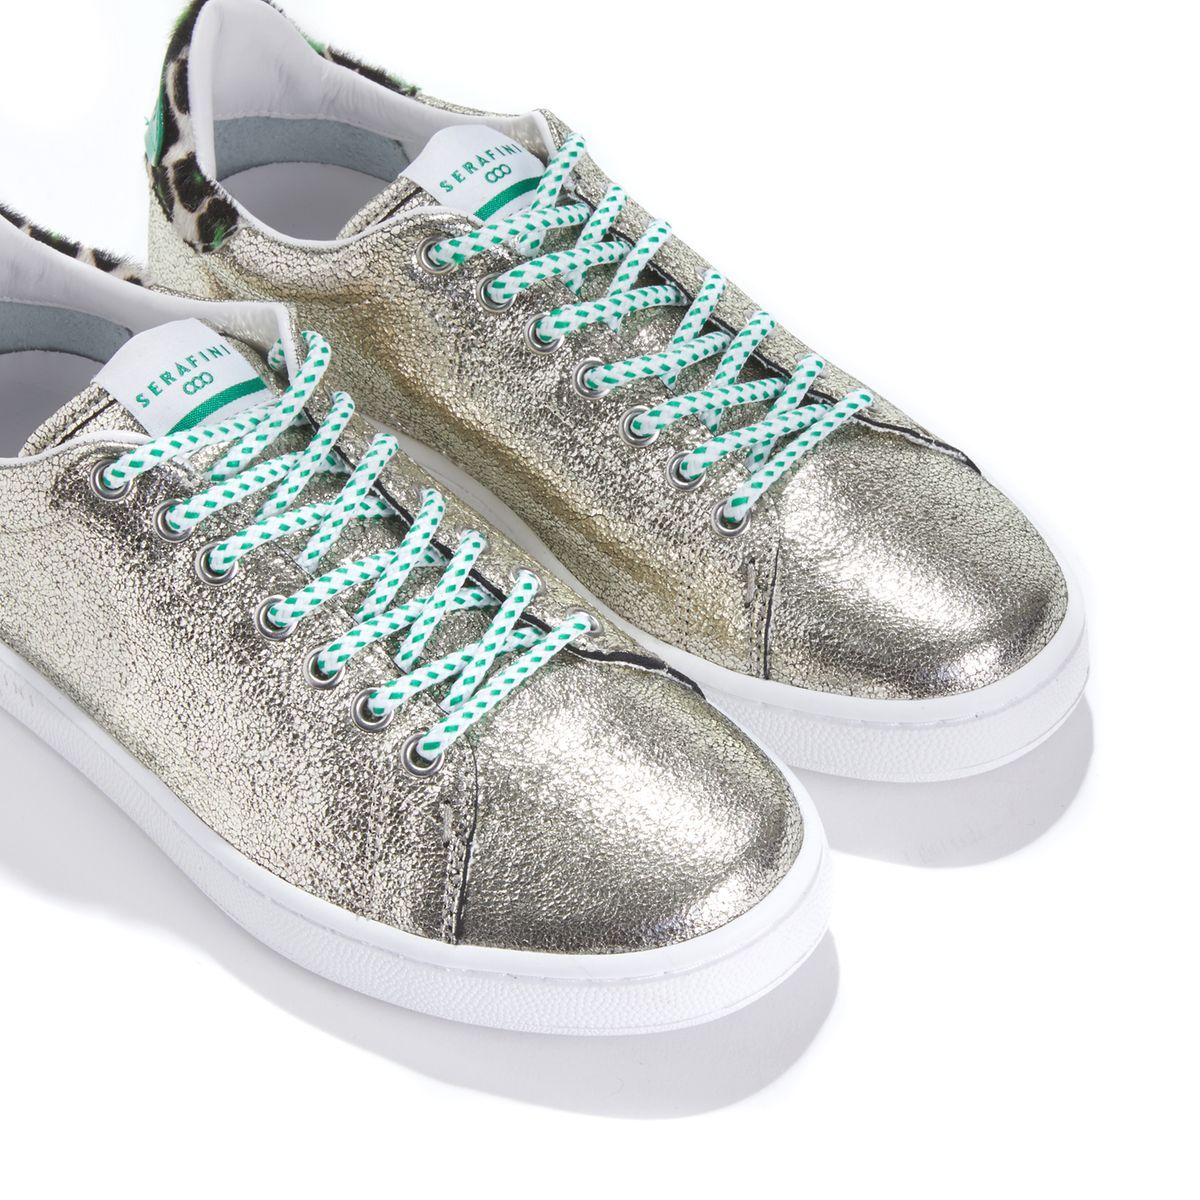 Baskets Glitter Jimmy Connors Taille : 41 in 2019